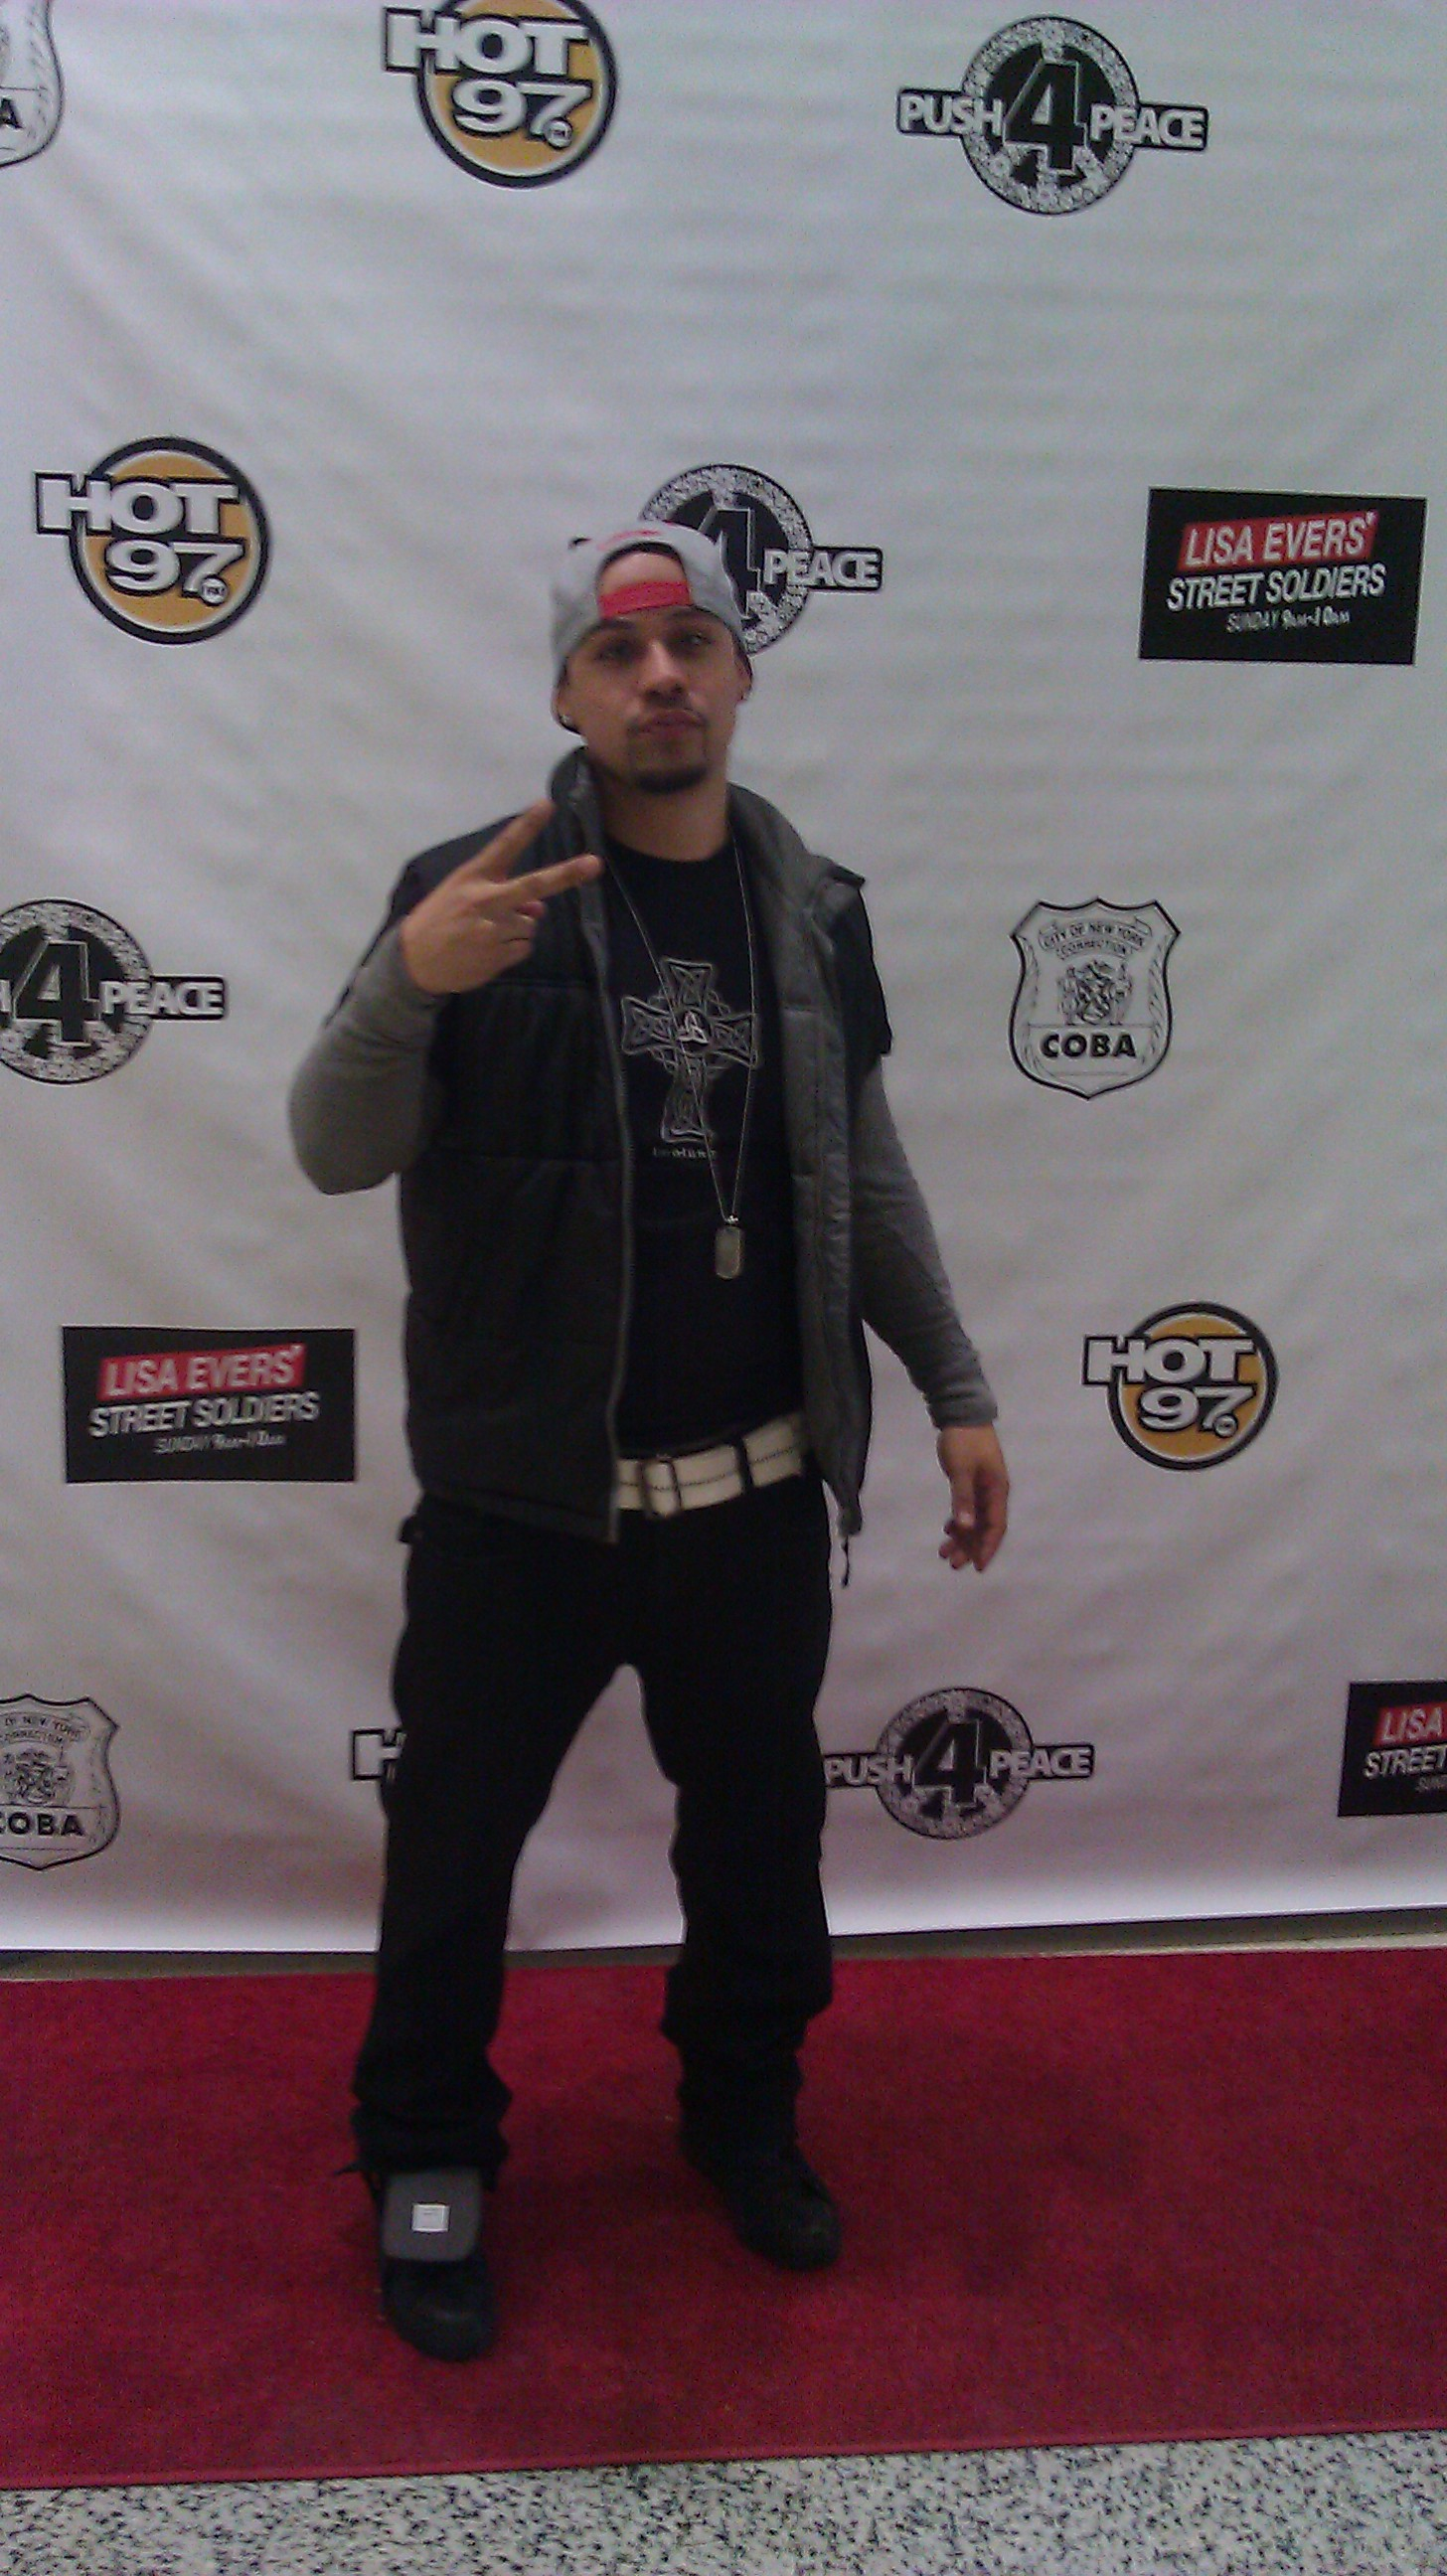 Walter Hidalgo at the Hot 97 Push for Peace event on April 28, 2012